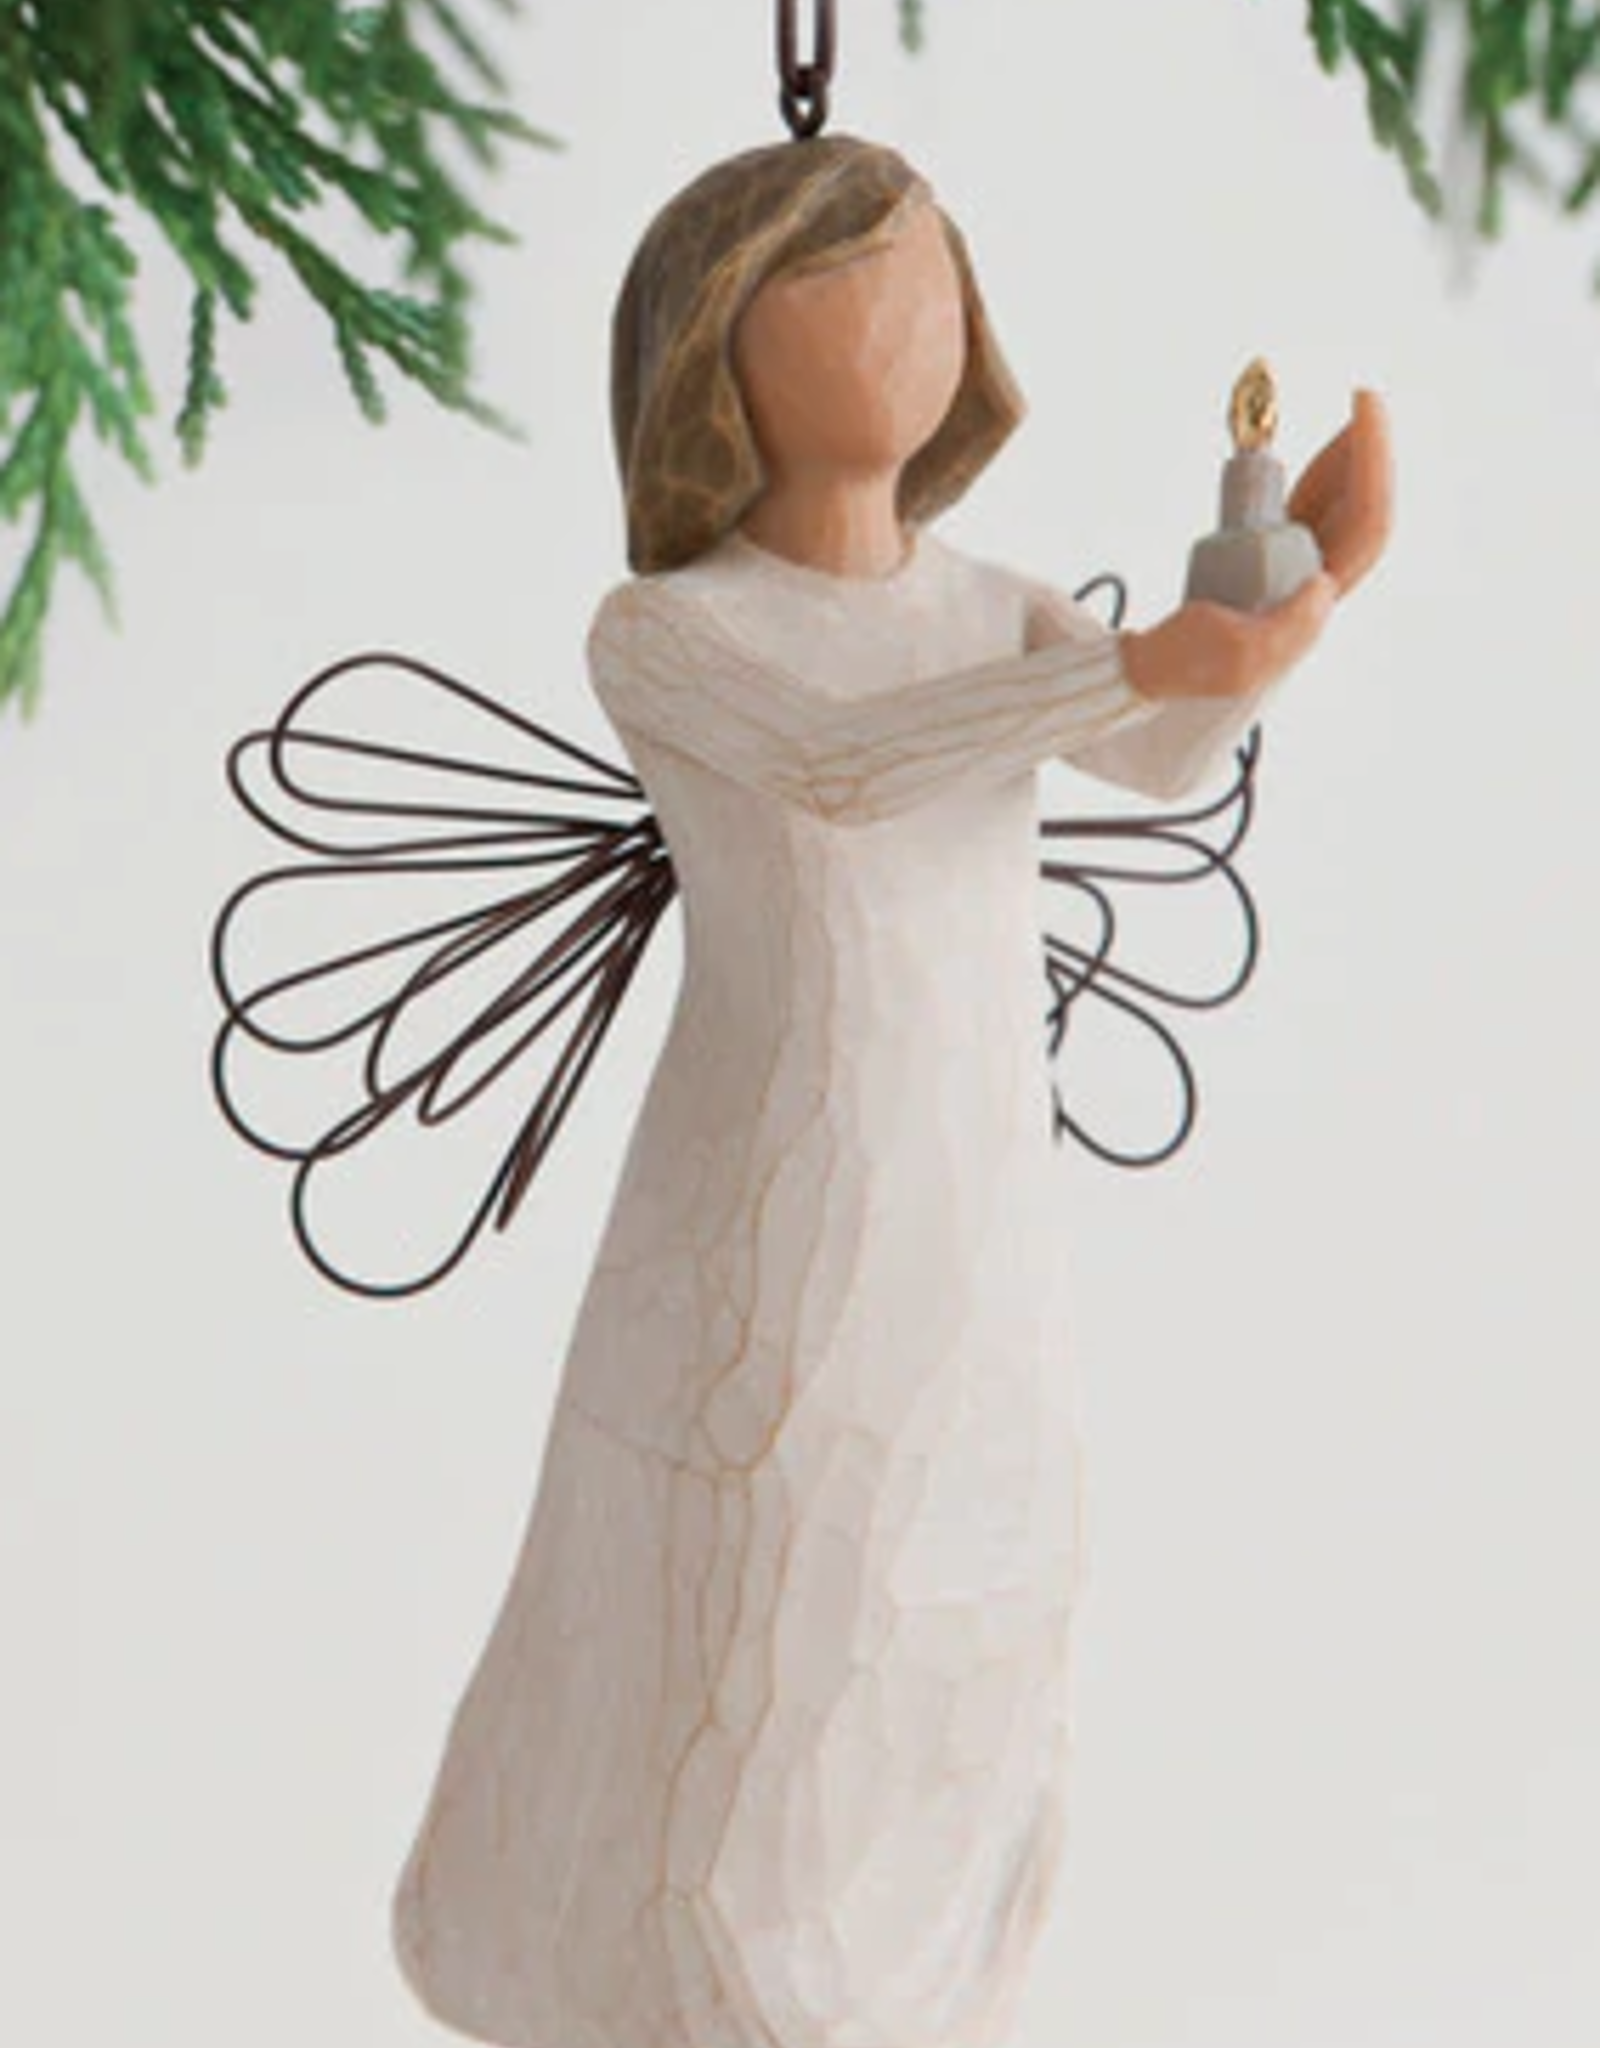 DEMDACO WILLOW TREE - ANGEL OF HOPE ORNAMENT